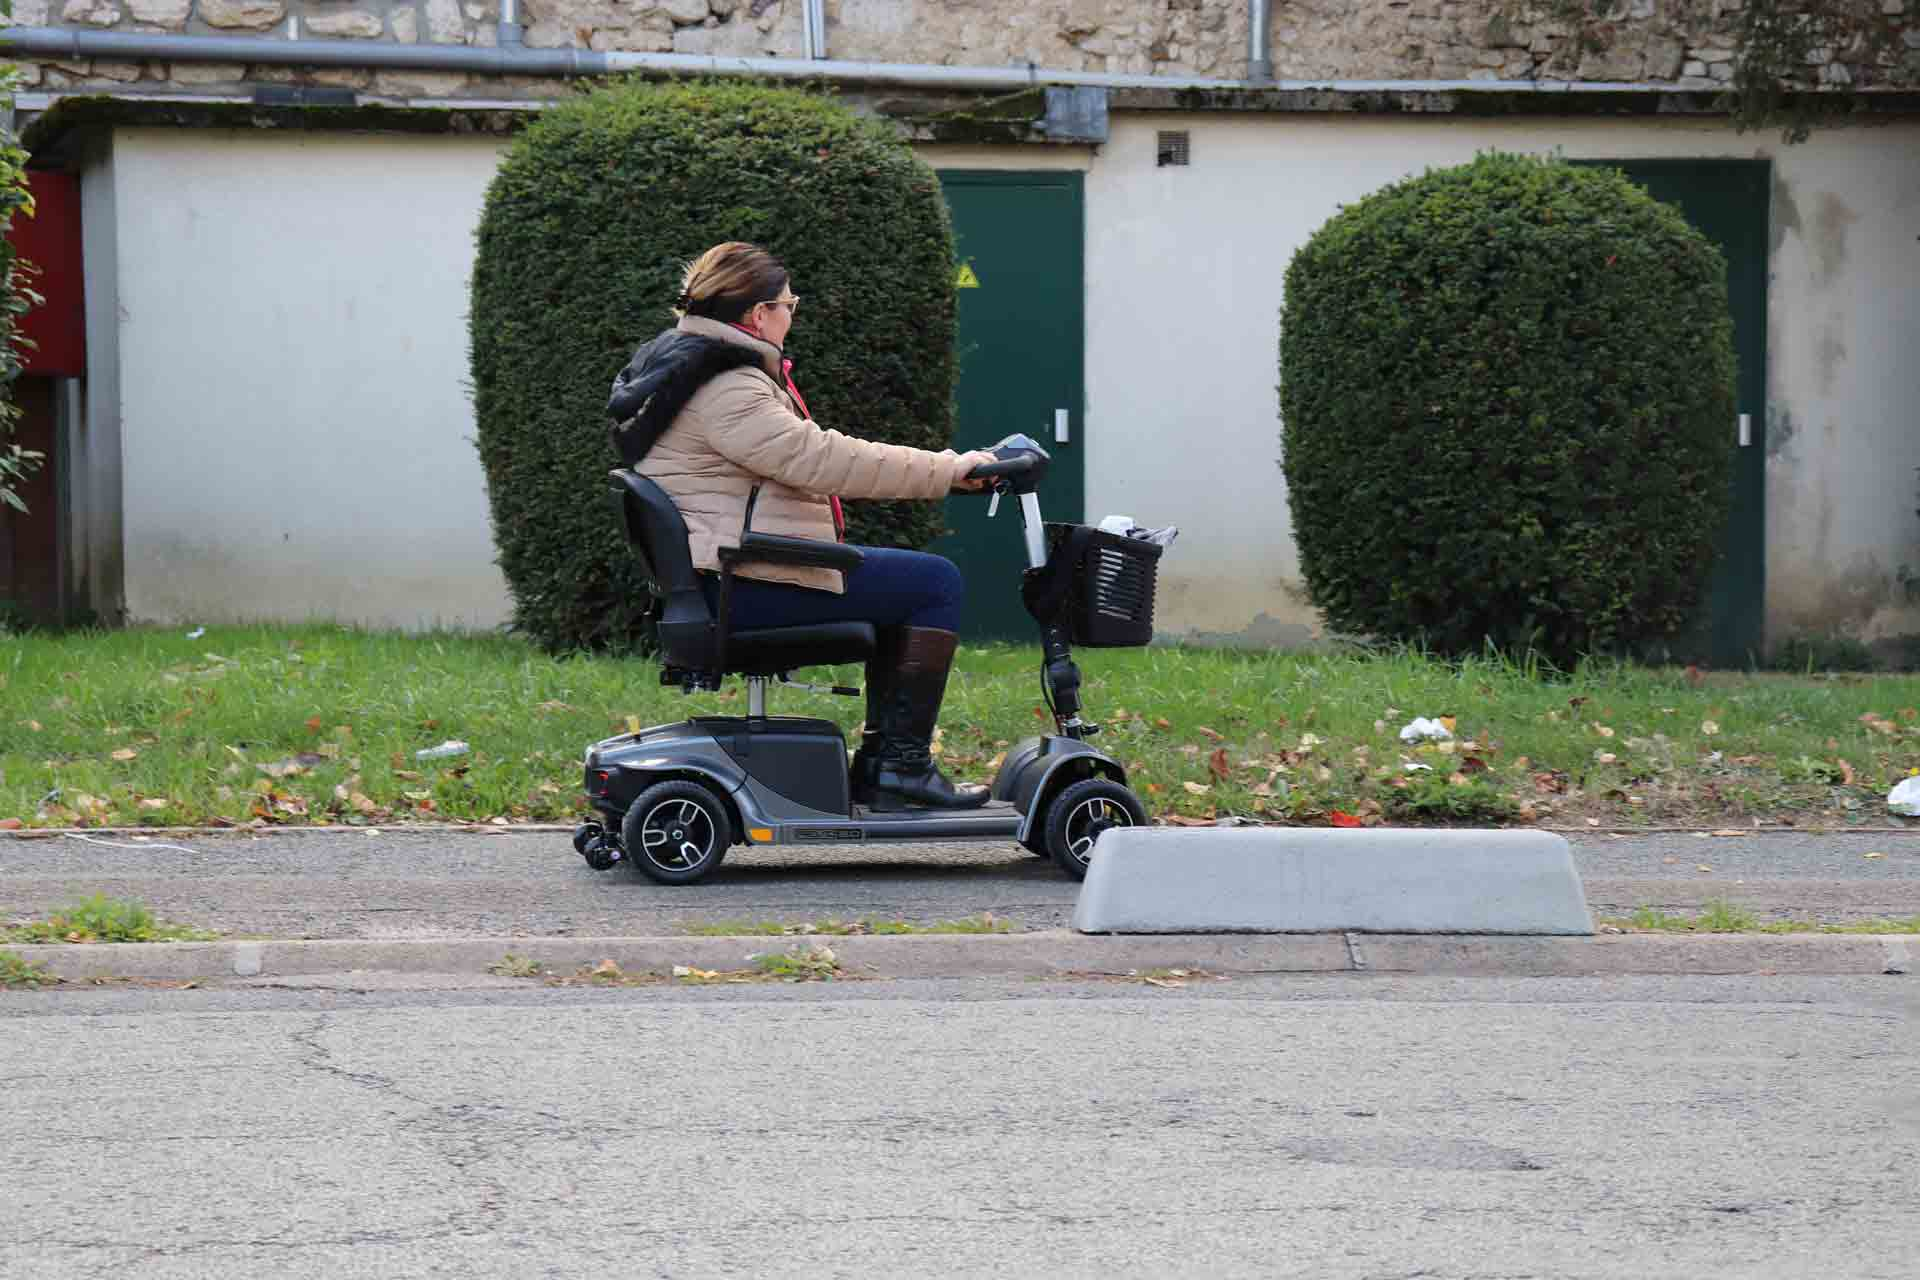 Hire electric scooter REVO in France paris